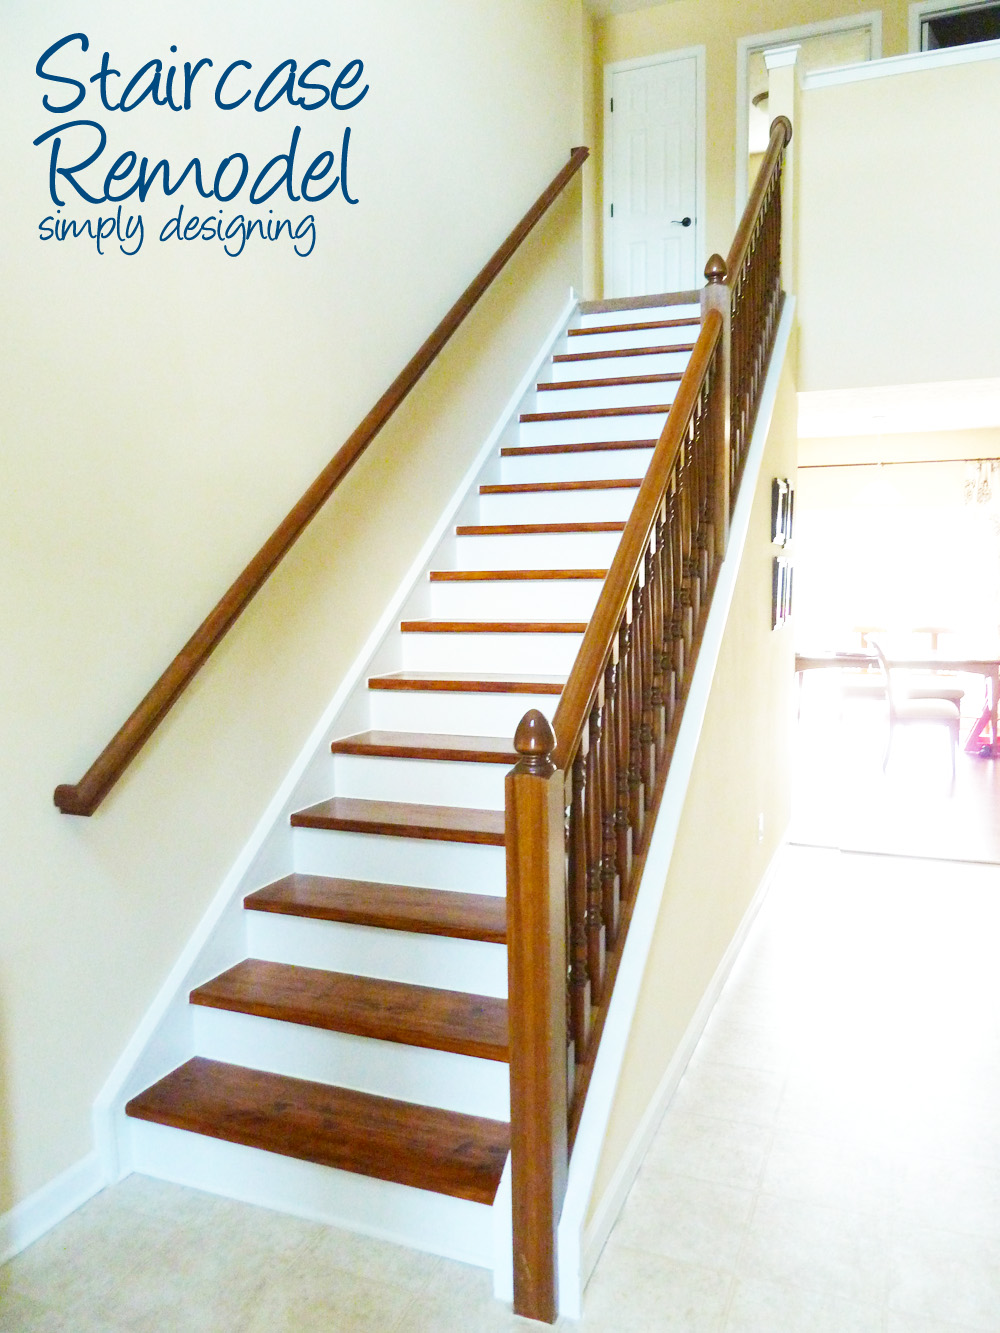 Staircase Remodel | Step By Step Instructions On How To Rip Up Carpet And Refinish  Wood